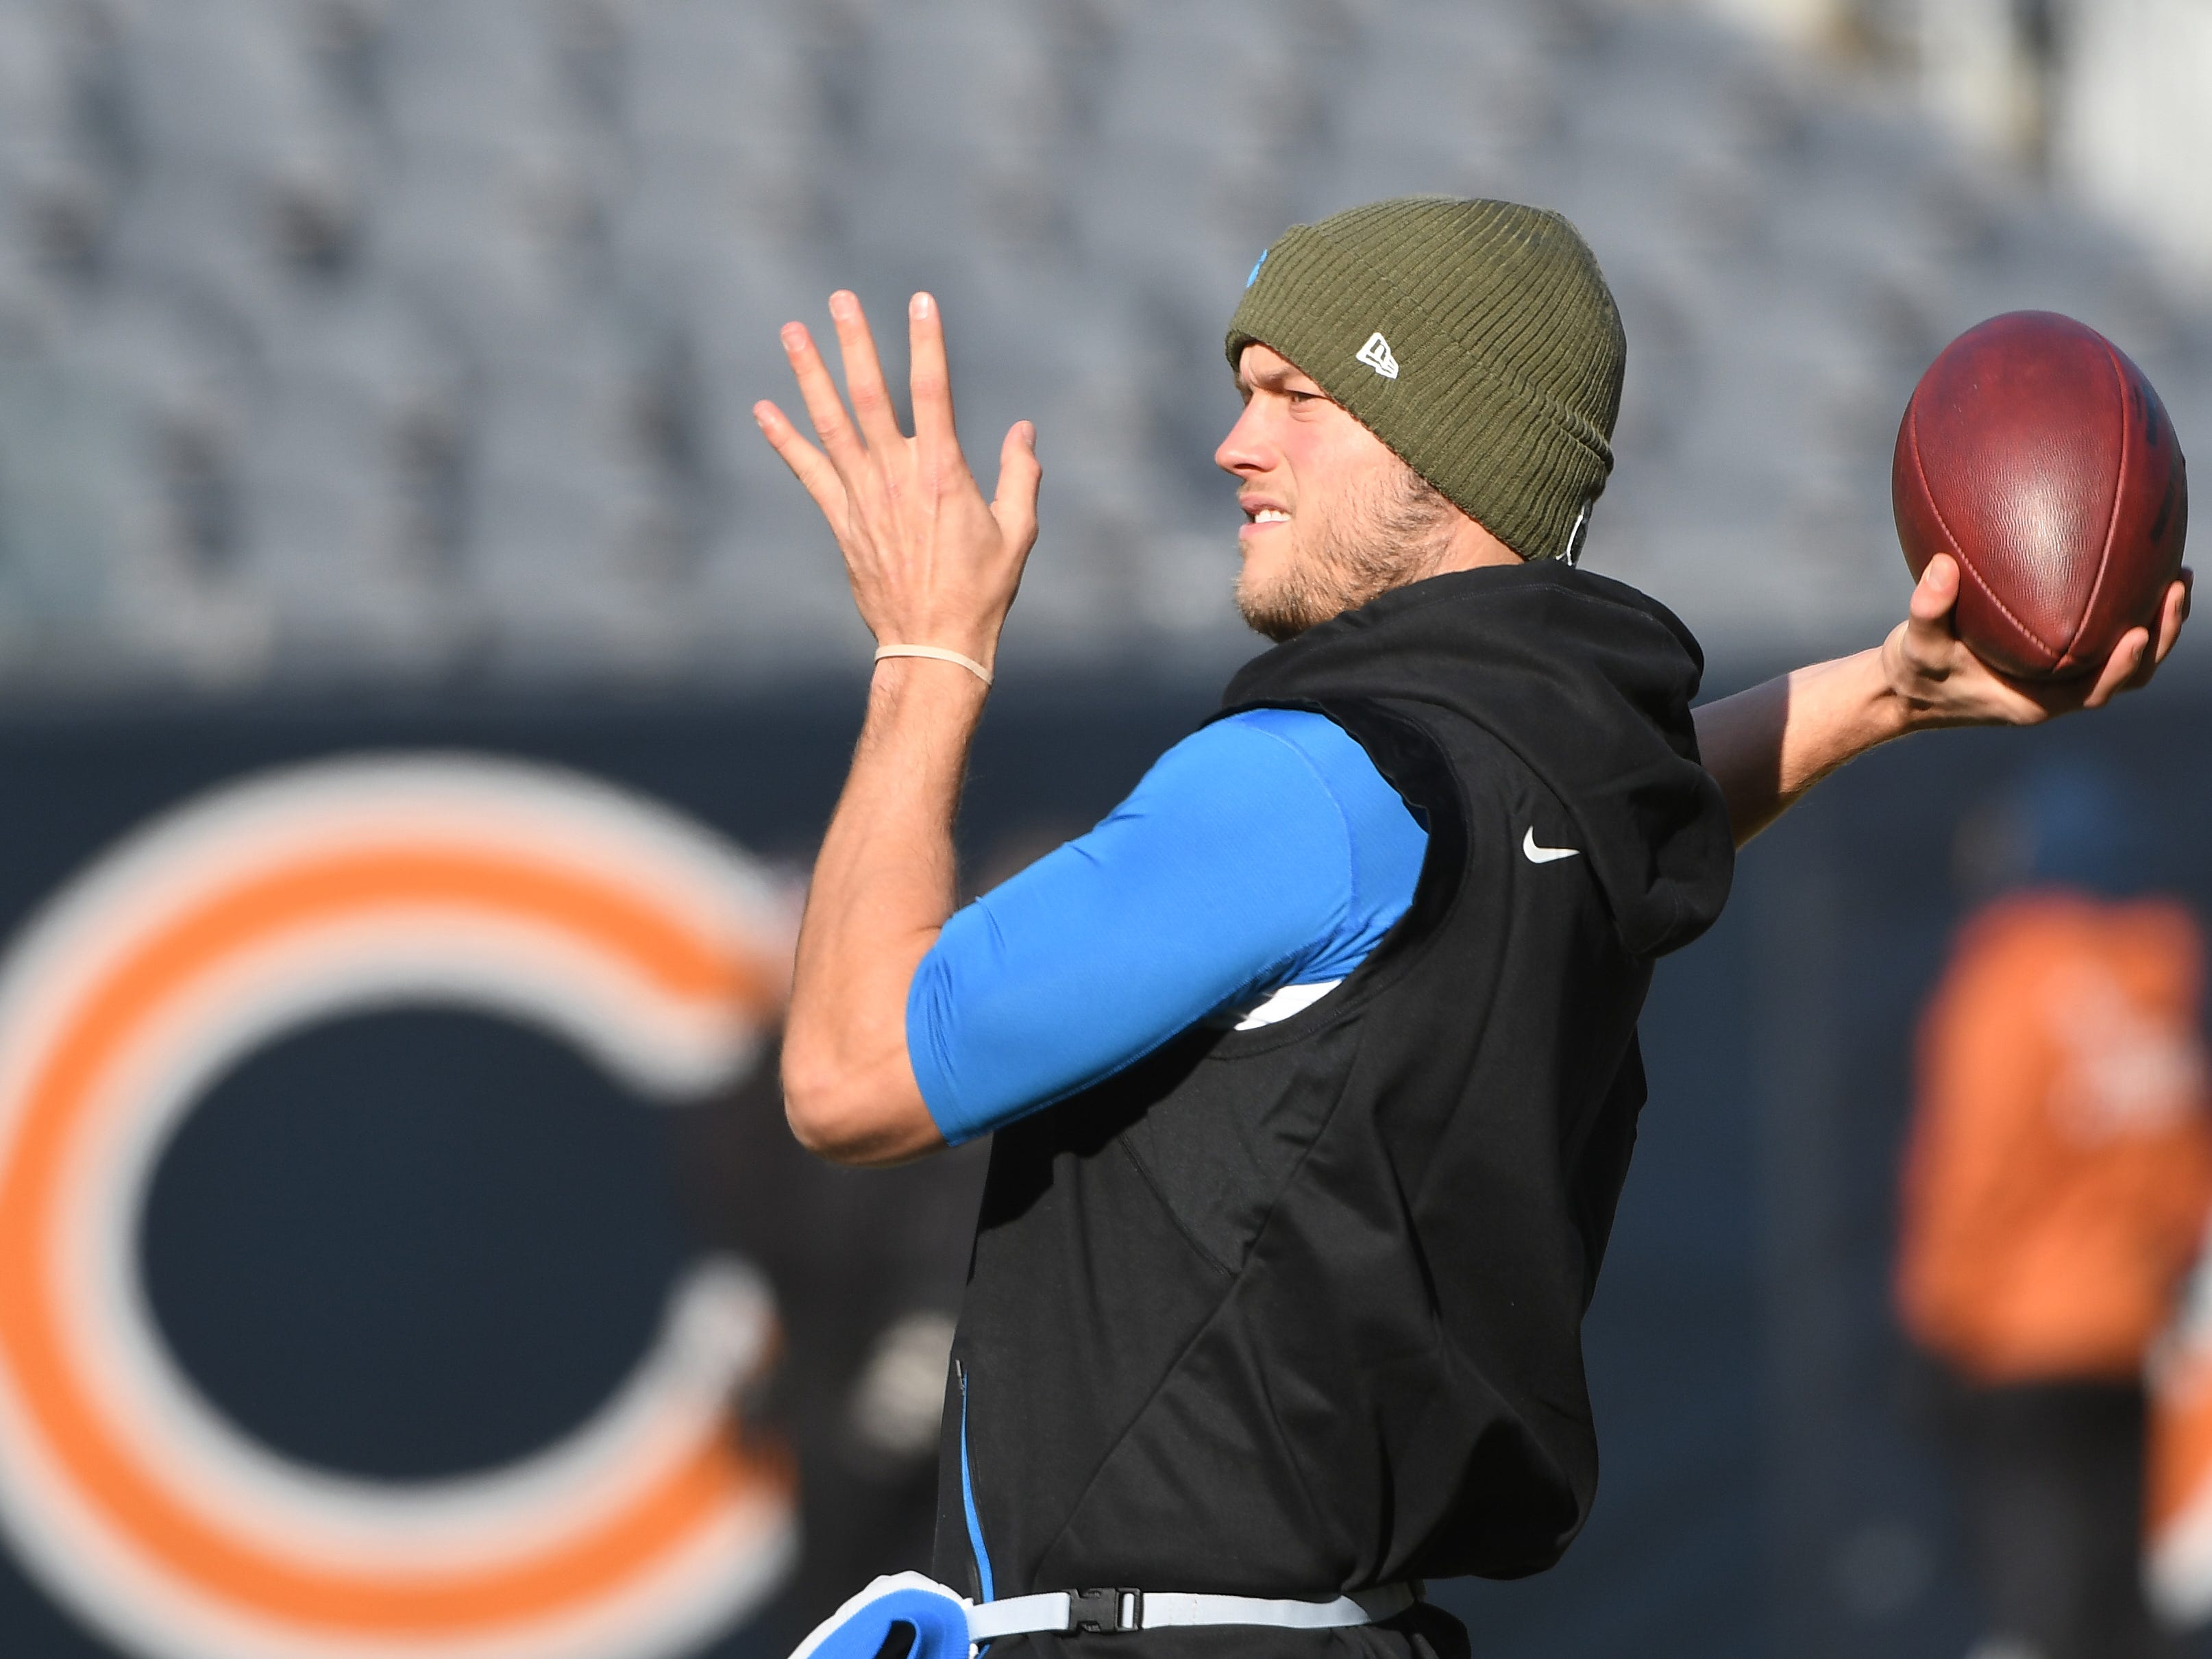 Lions quarterback Matthew Stafford warms up in the cold at Soldiers Field before Detroit takes on the Chicago Bears in Chicago, Illinois on November 11, 2018.